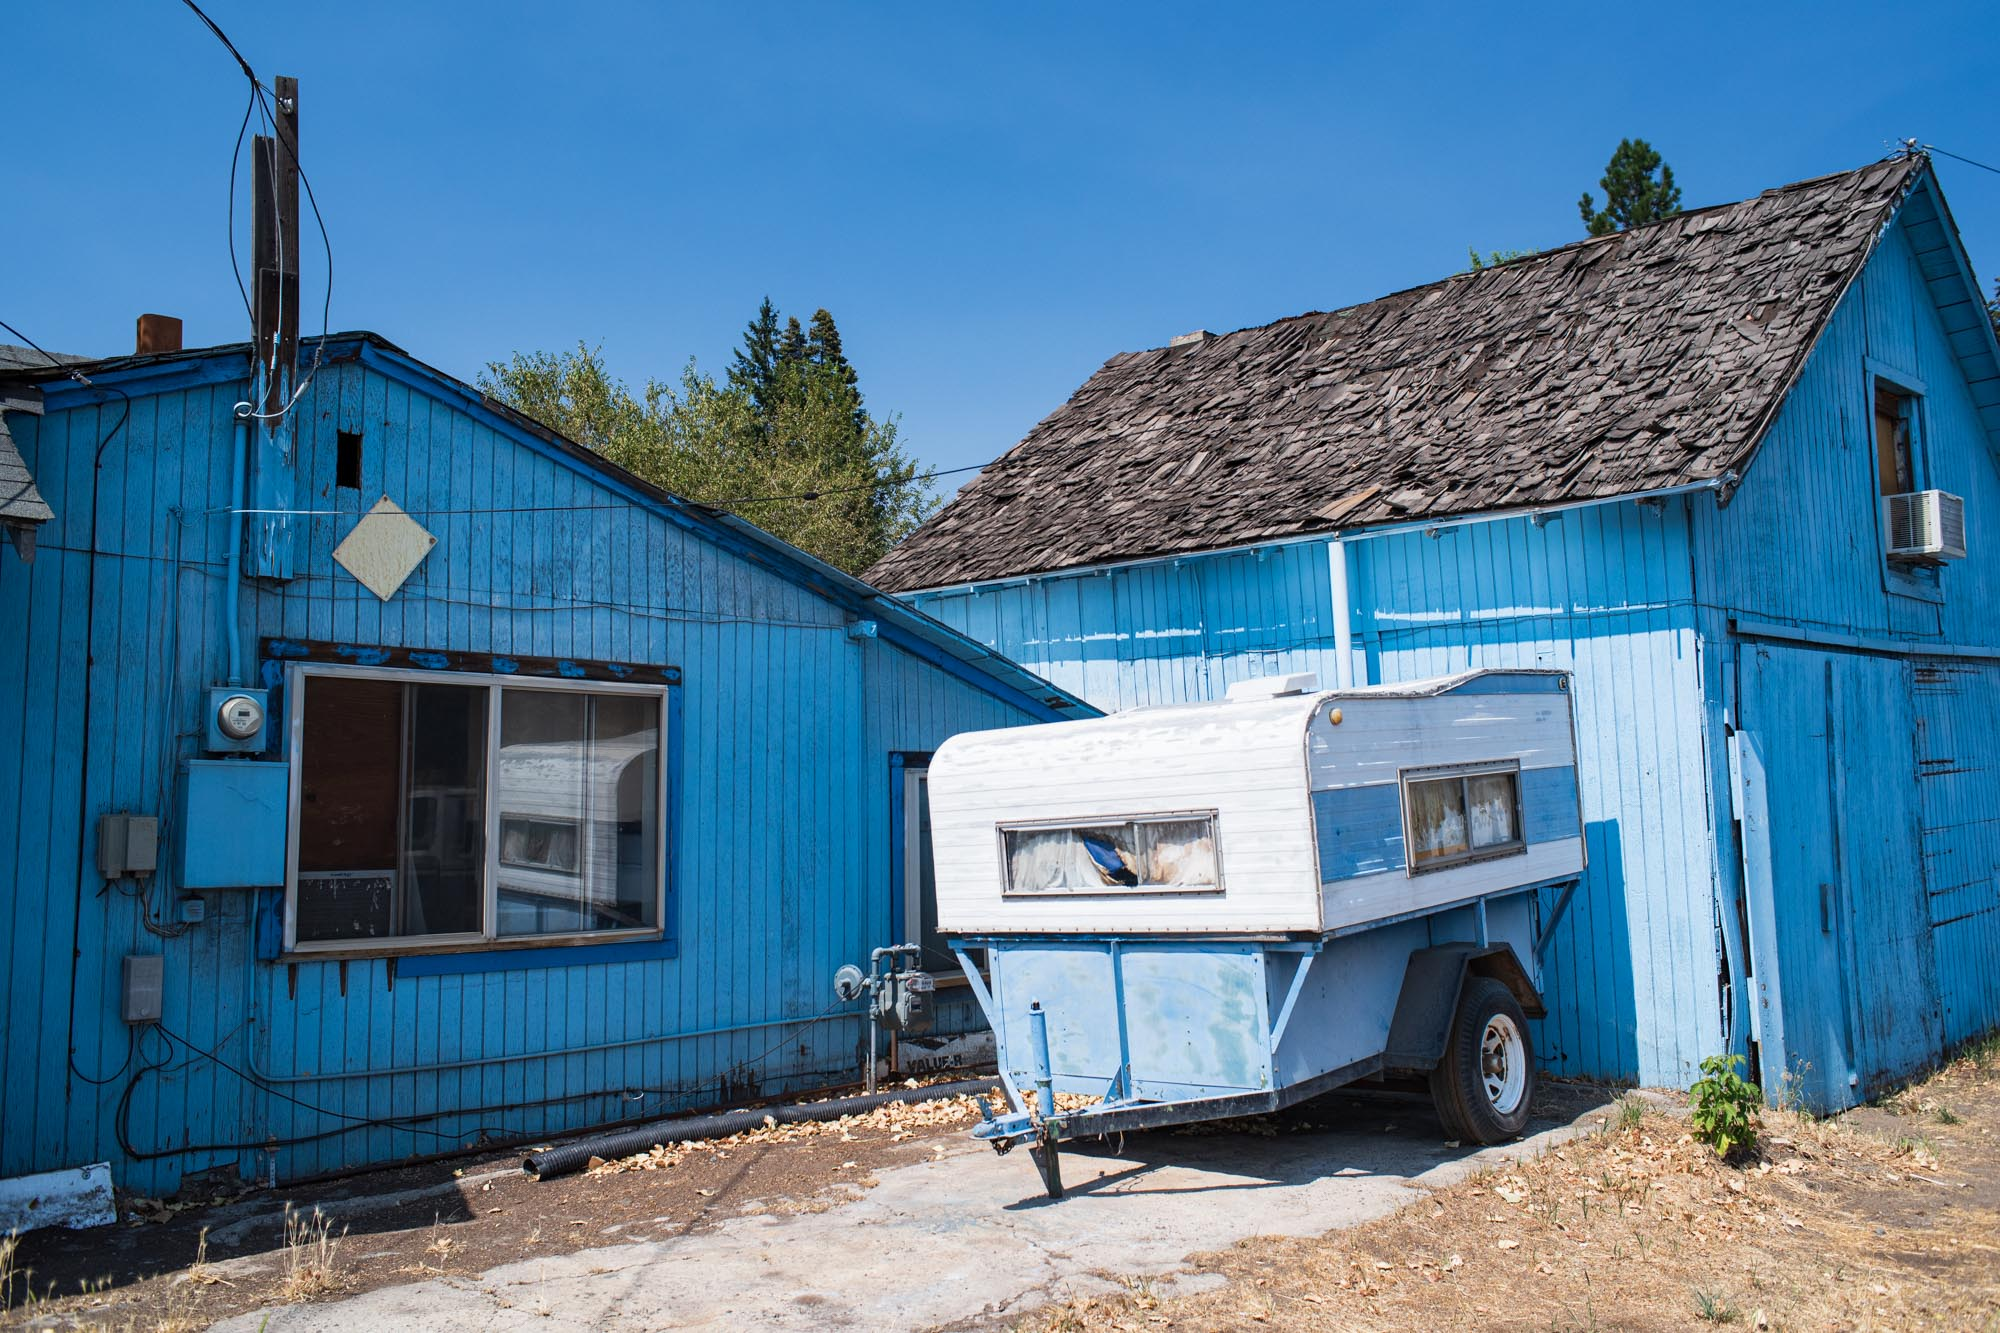 a faded blue house in a small rural town with a blue and white trailer parked in front of it